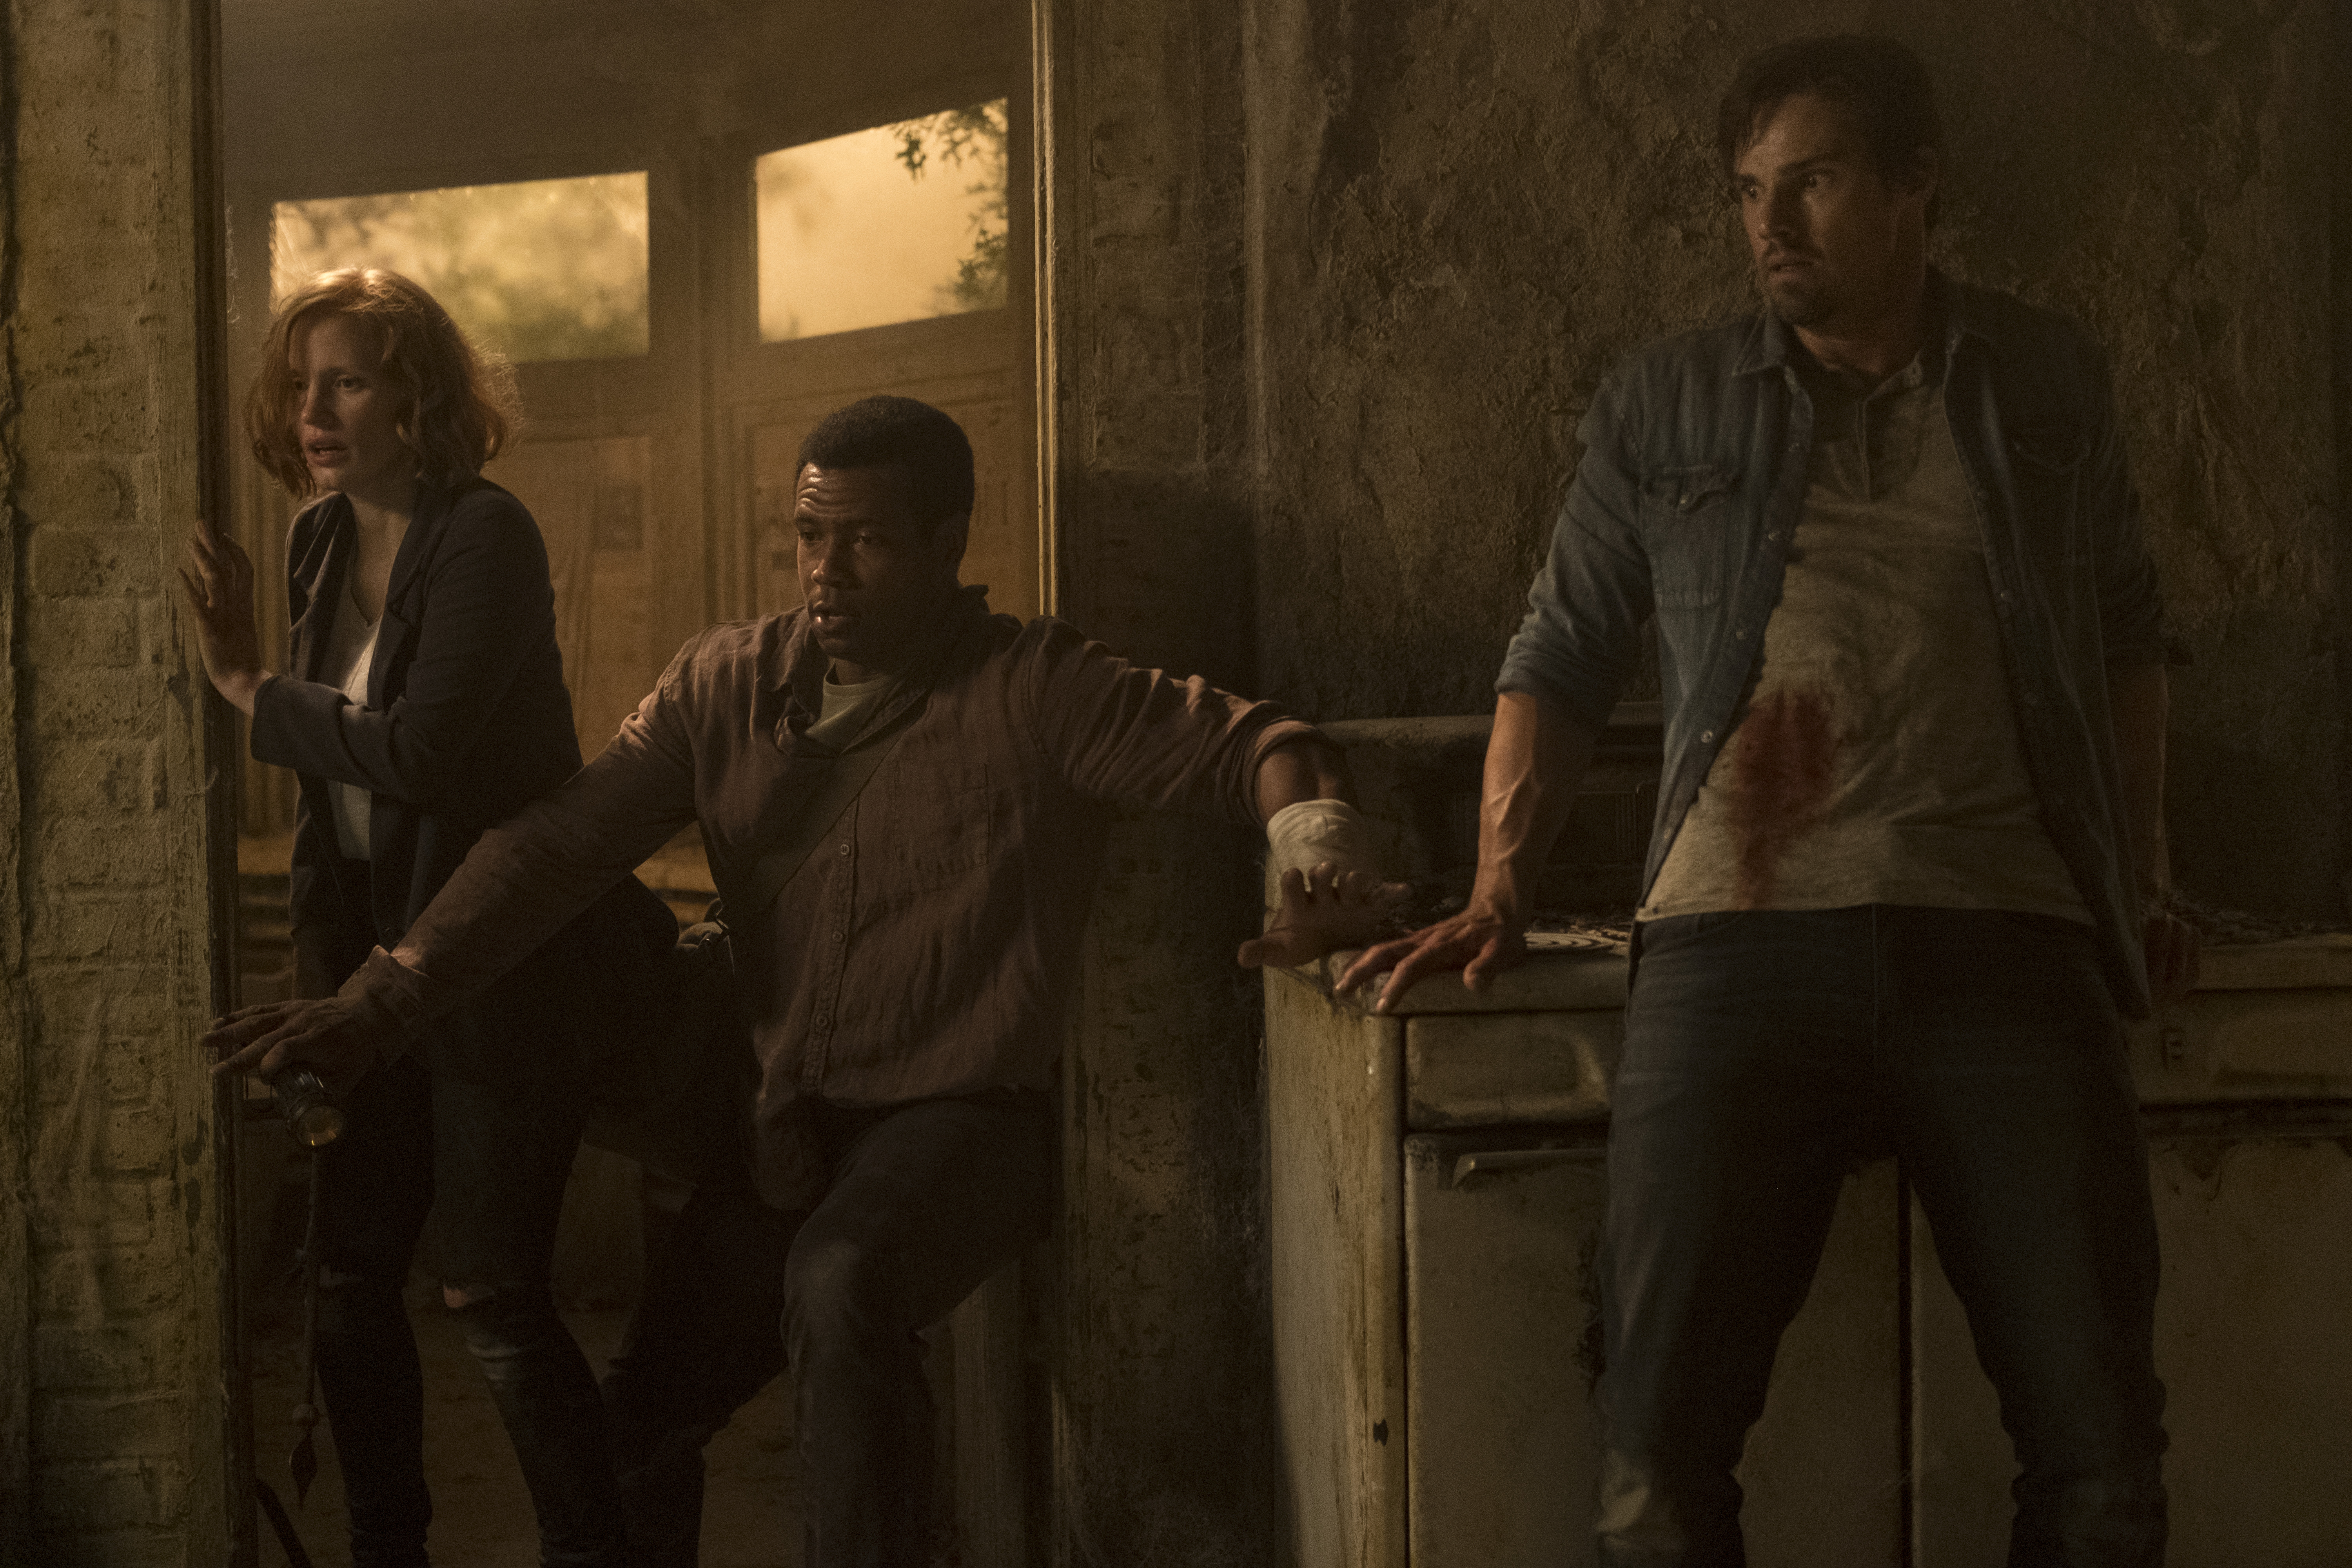 (L-r) Jessica Chastain as Beverly Marsh, Isaiah Mustafa as Mike Hanlon and Jay Ryan as Ben Hanscom in 'It Chapter Two'